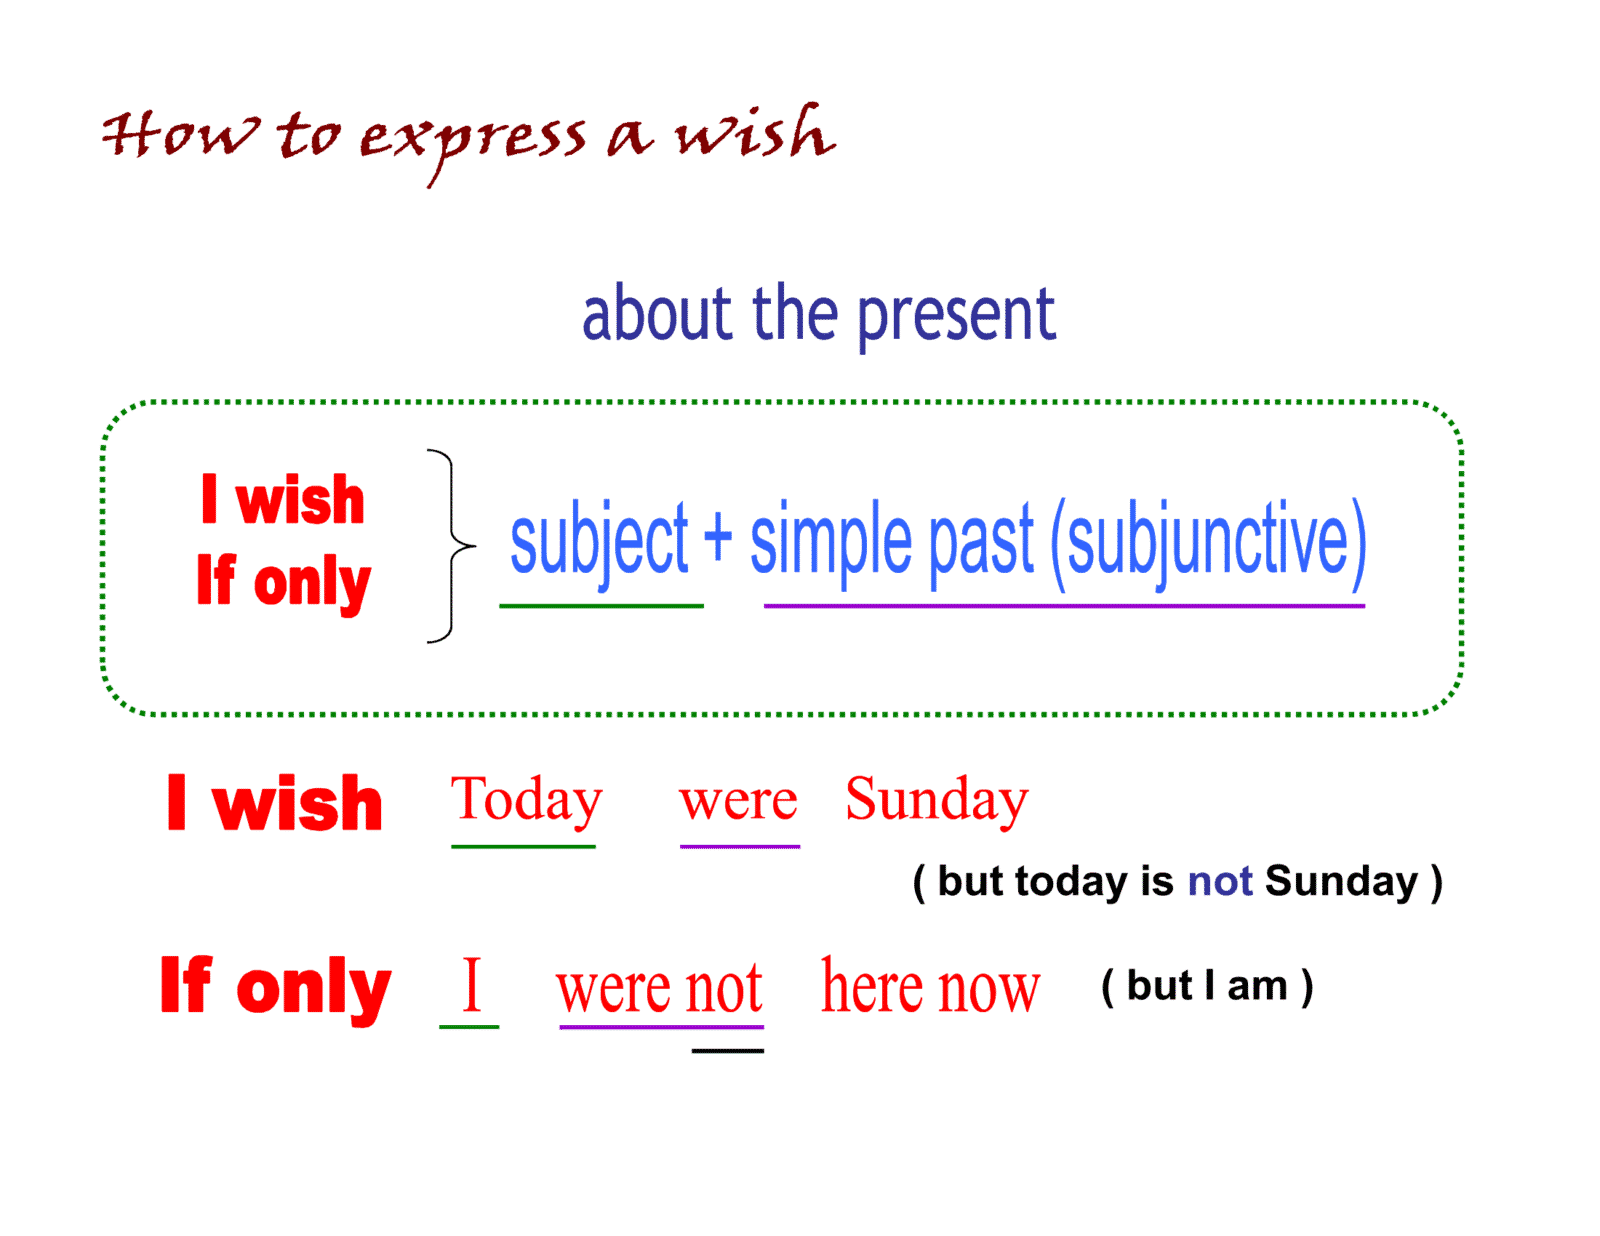 How to Express Wishes about the present